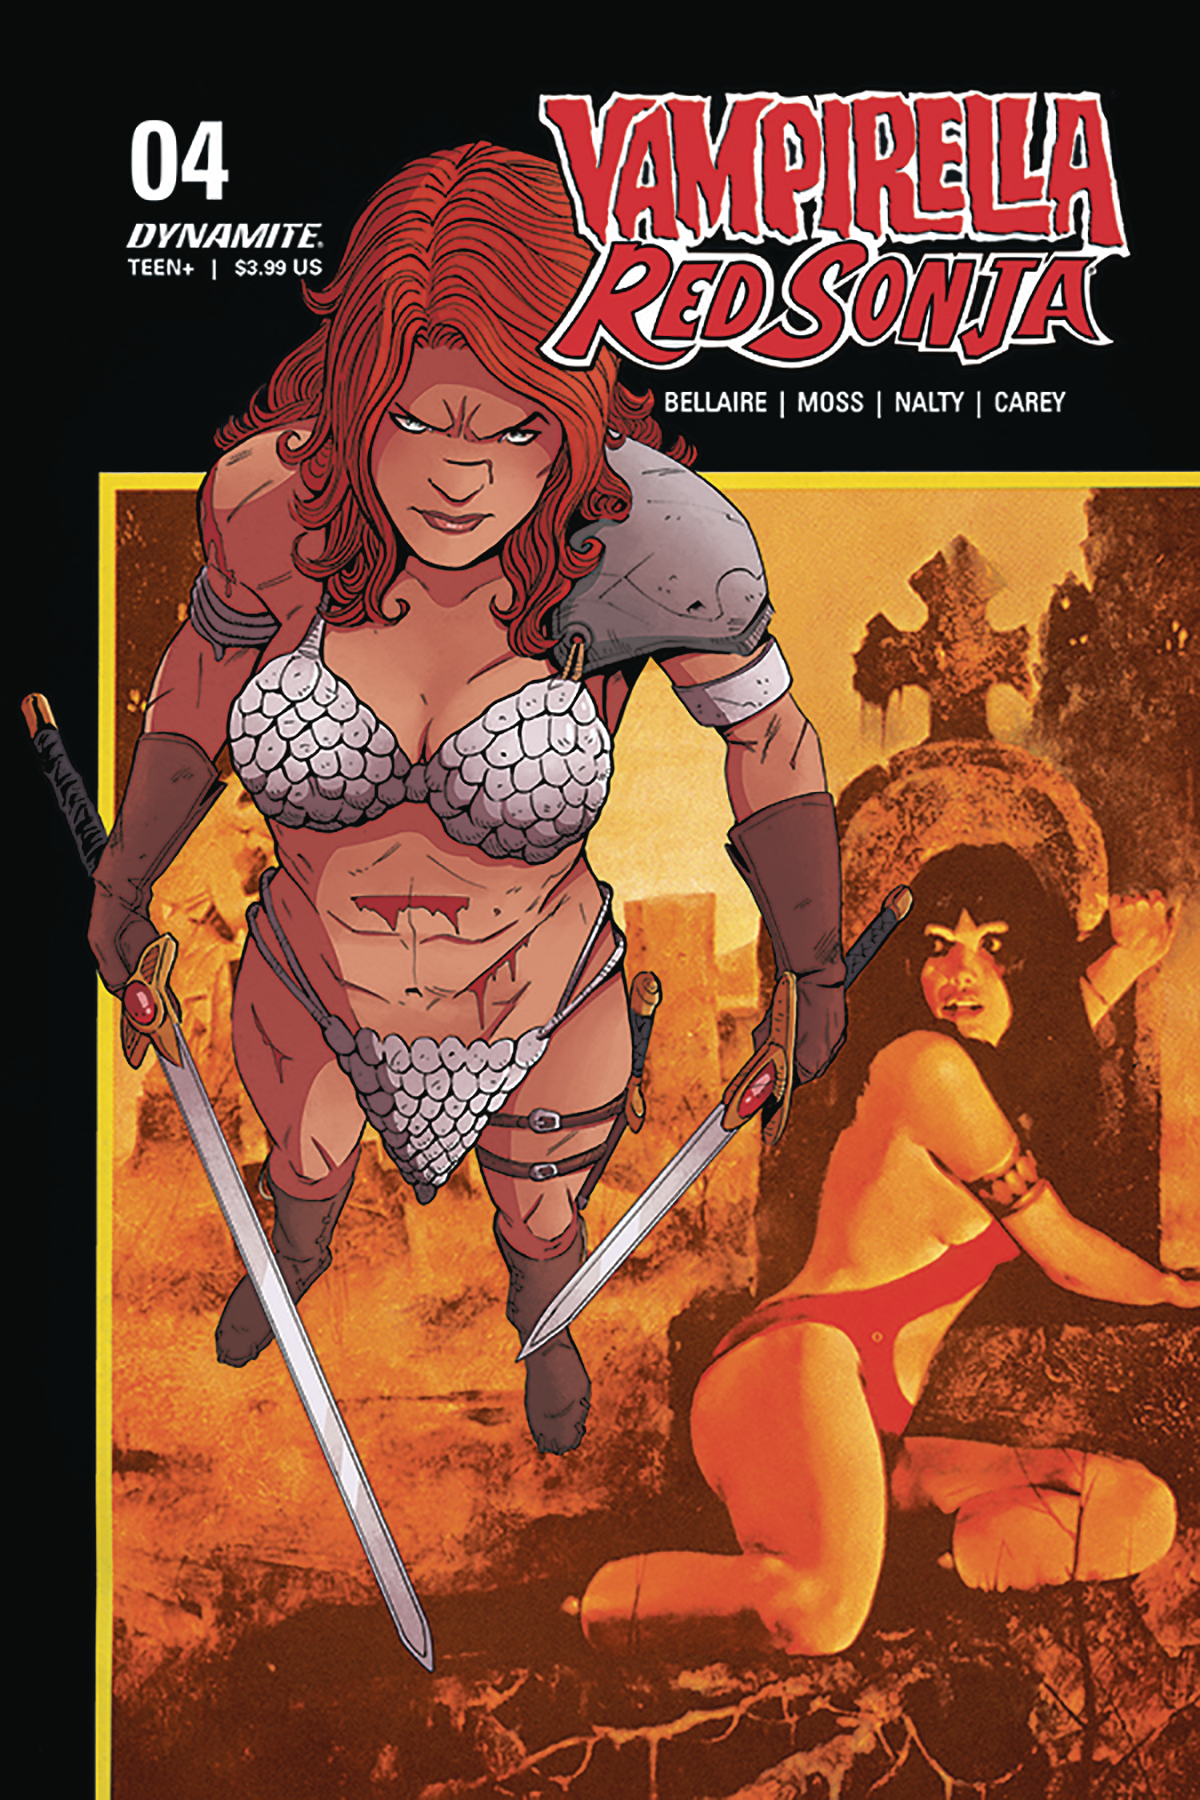 VAMPIRELLA RED SONJA #4 CVR E MOSS THEN NOW